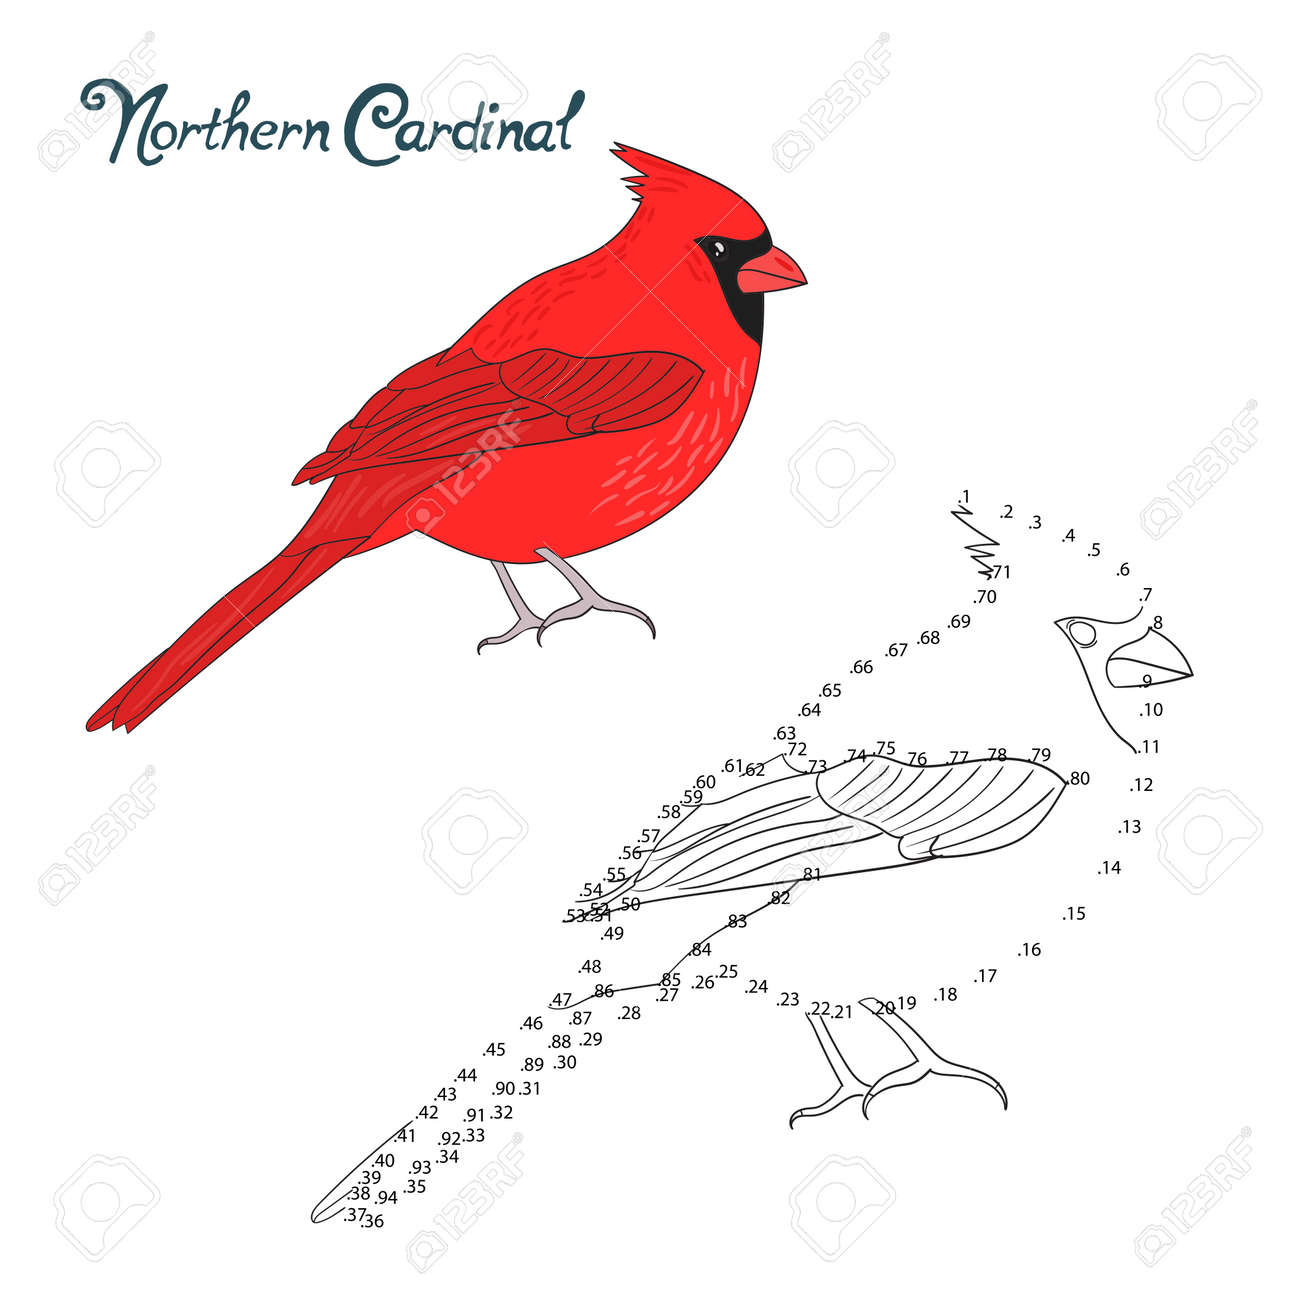 educational game connect the dots to draw nothern cardinal bird